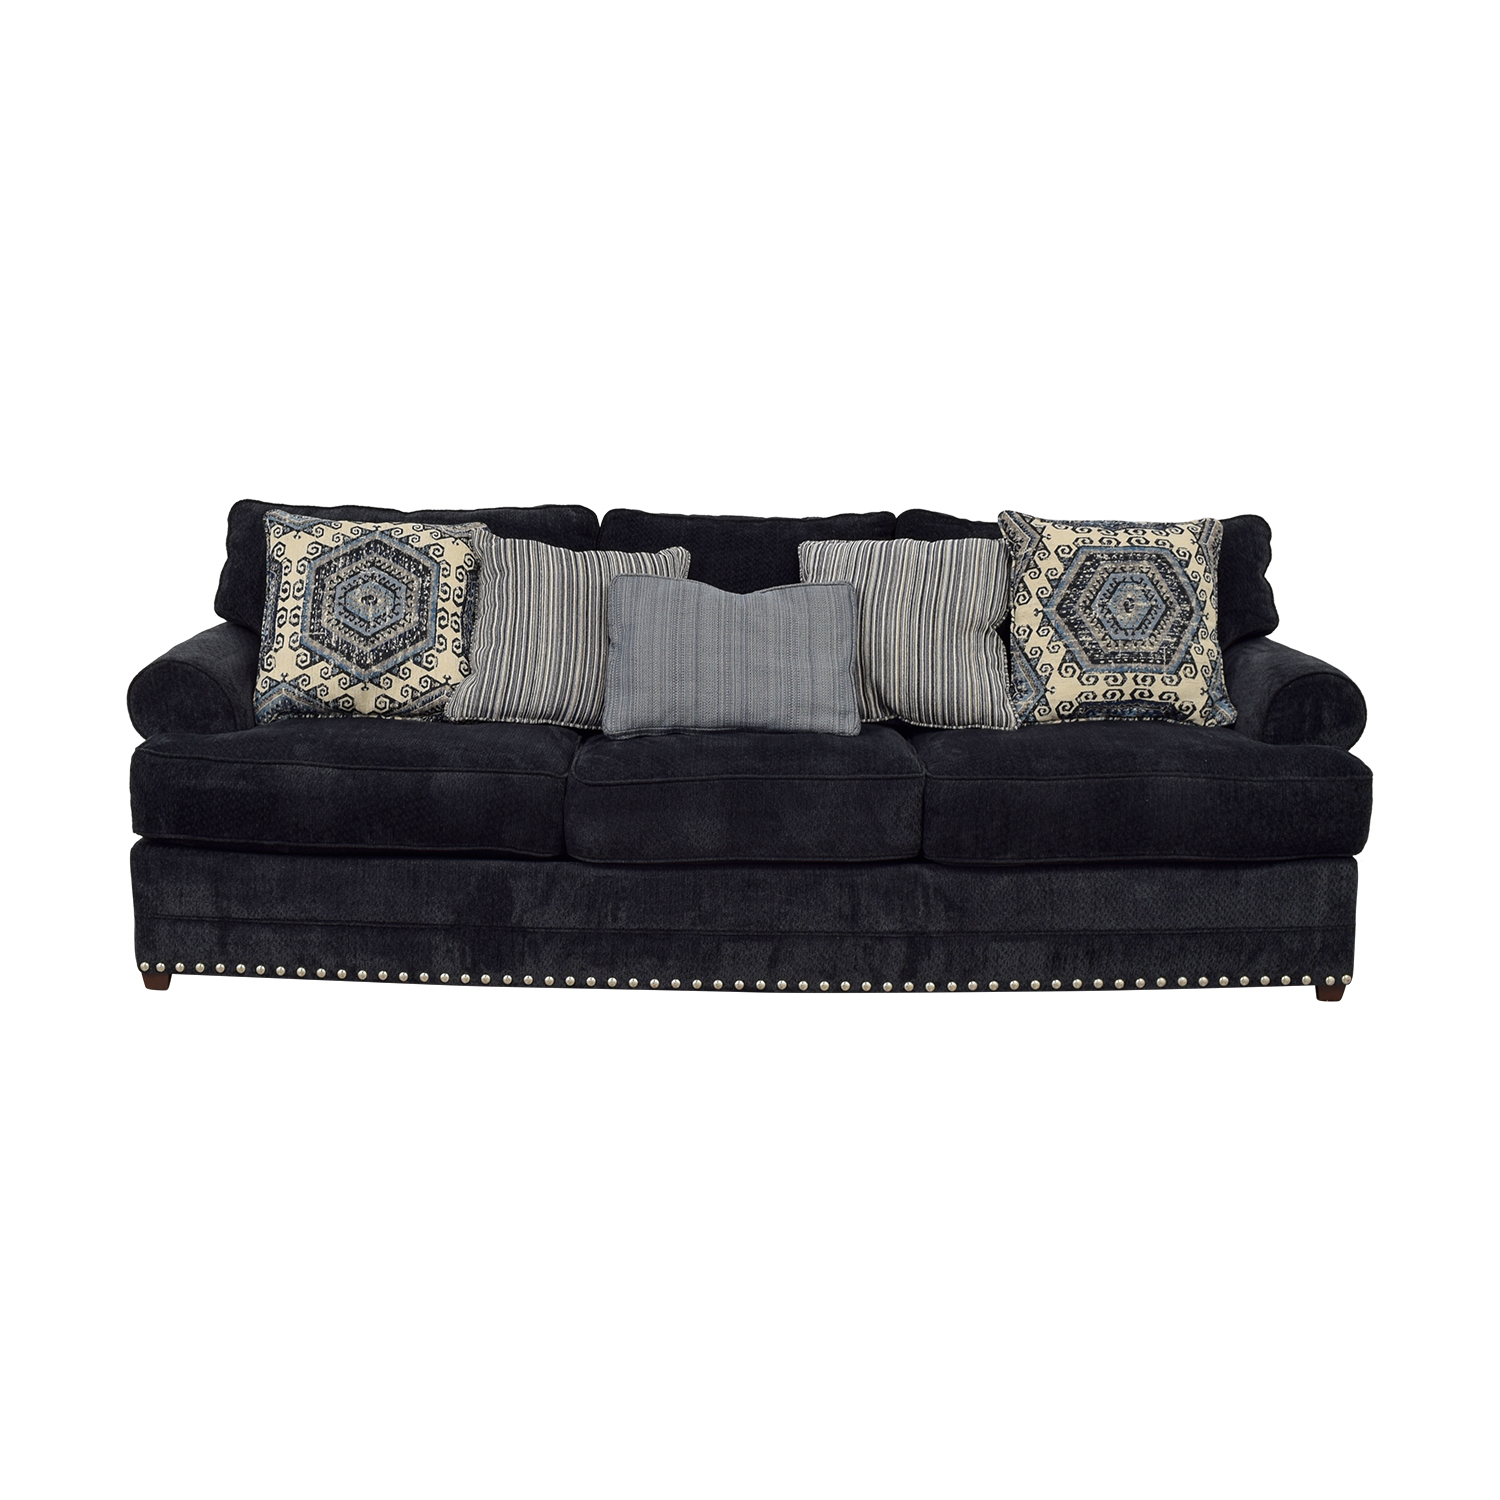 shop Bob's Furniture Dakota Navy Nailhead Three-Cushion Sofa Bob's Furniture Classic Sofas